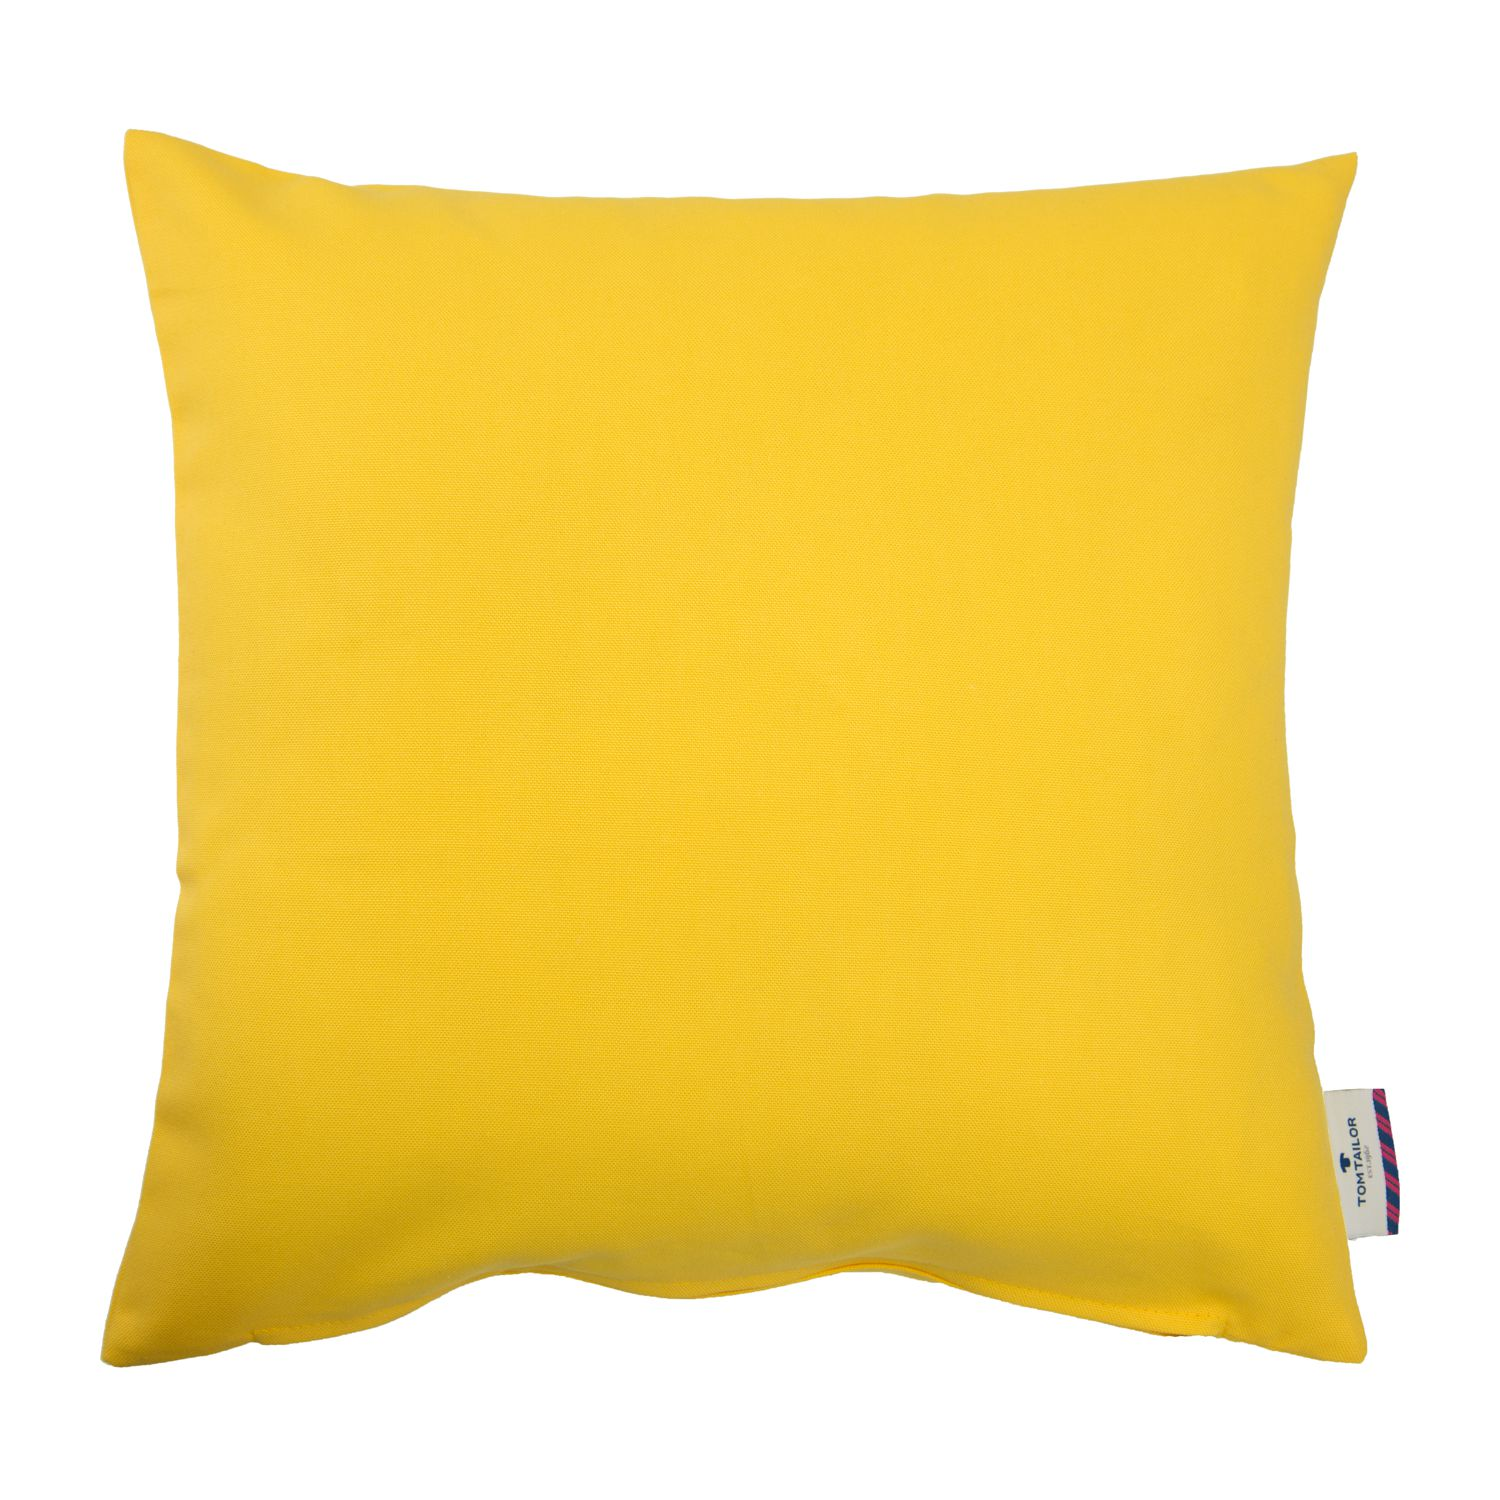 Image of Federa per cuscino T-Dove - Giallo limone - Dimensioni: 60 x 60 cm, Tom Tailor